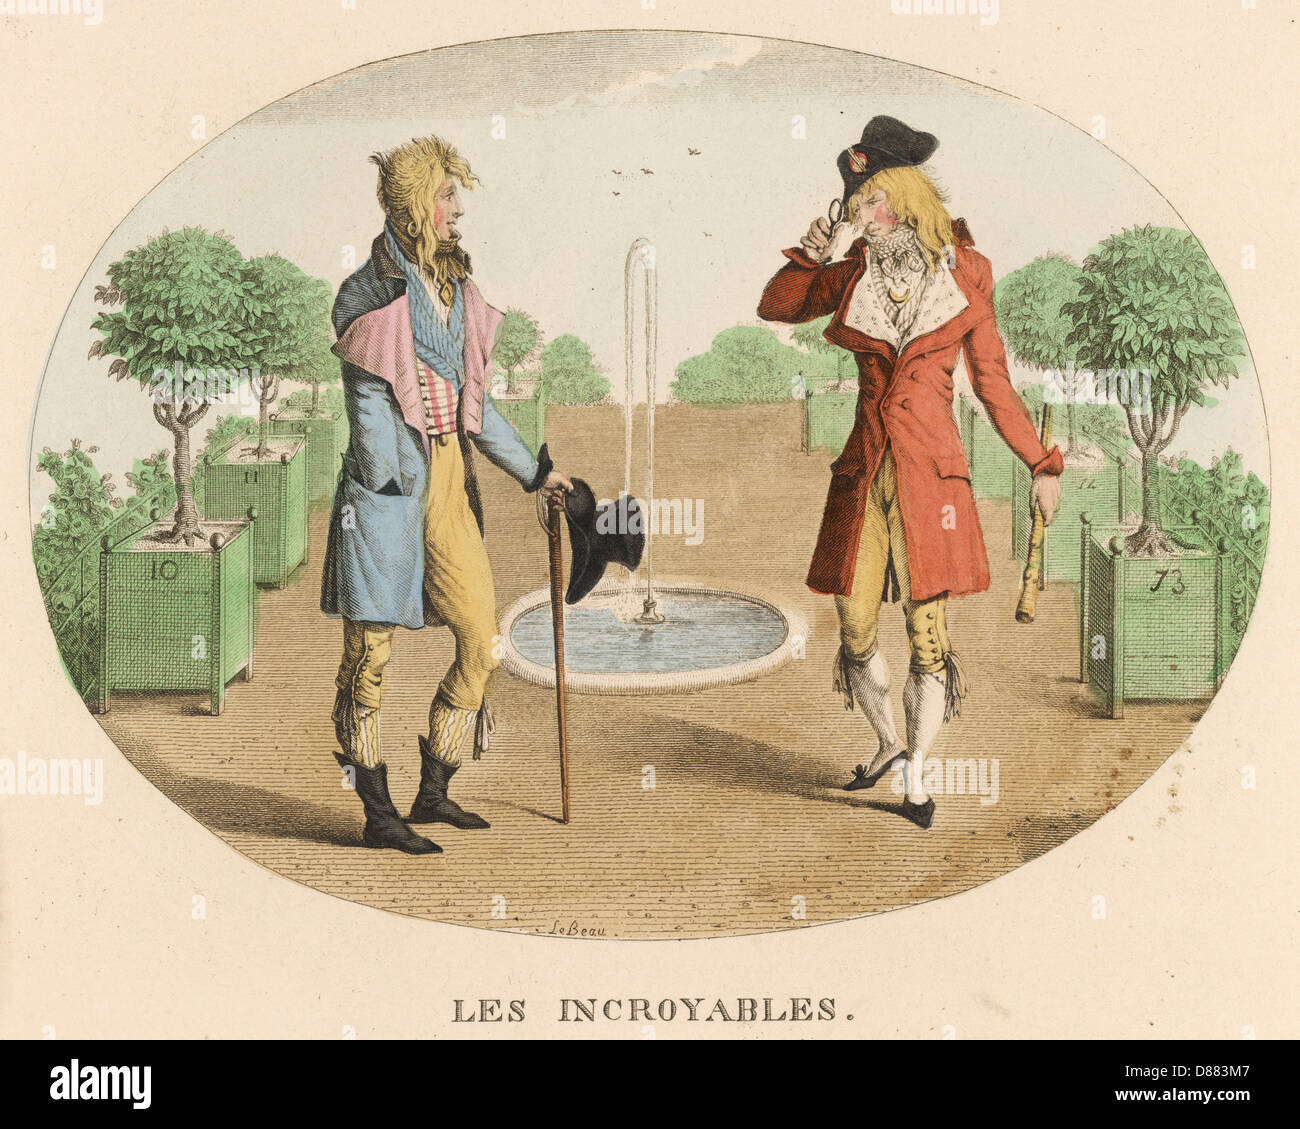 Two Incroyables  1795 - Stock Image